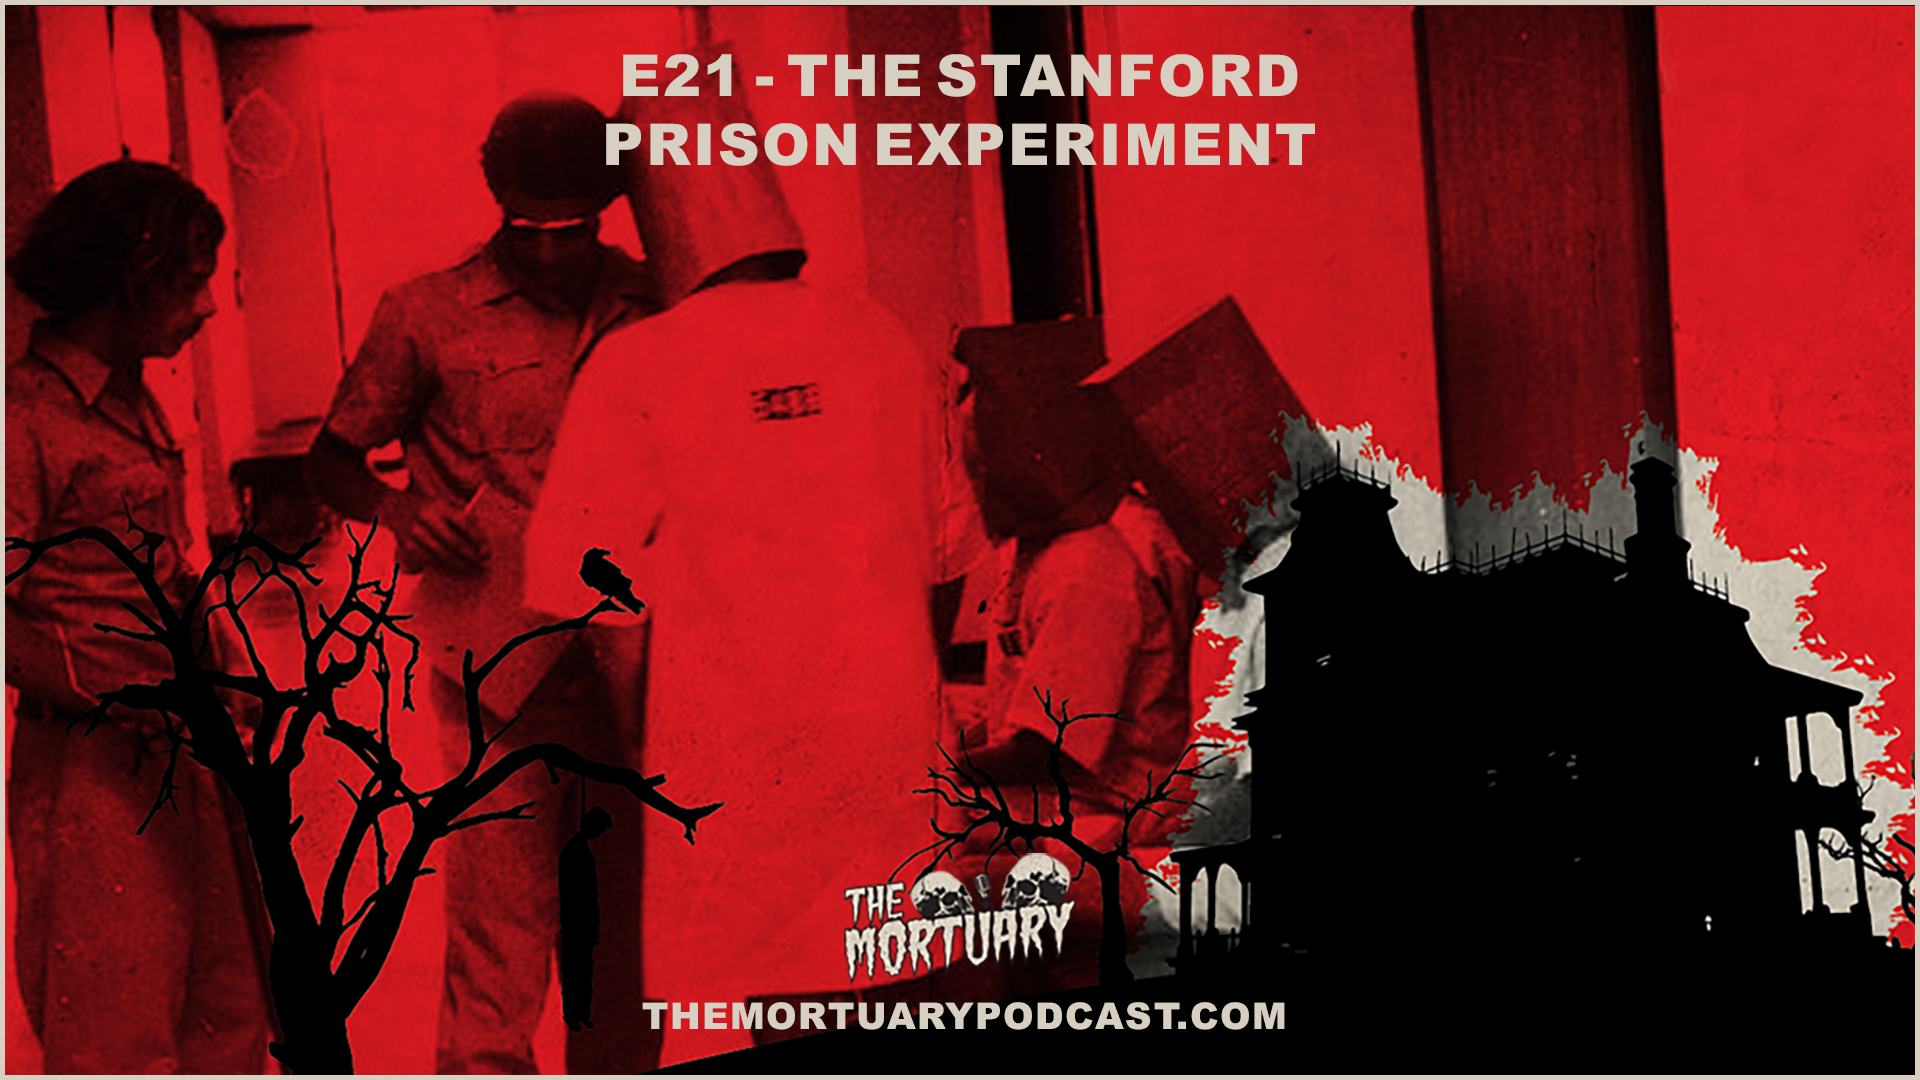 stanford prison experiment the mortuary podcast